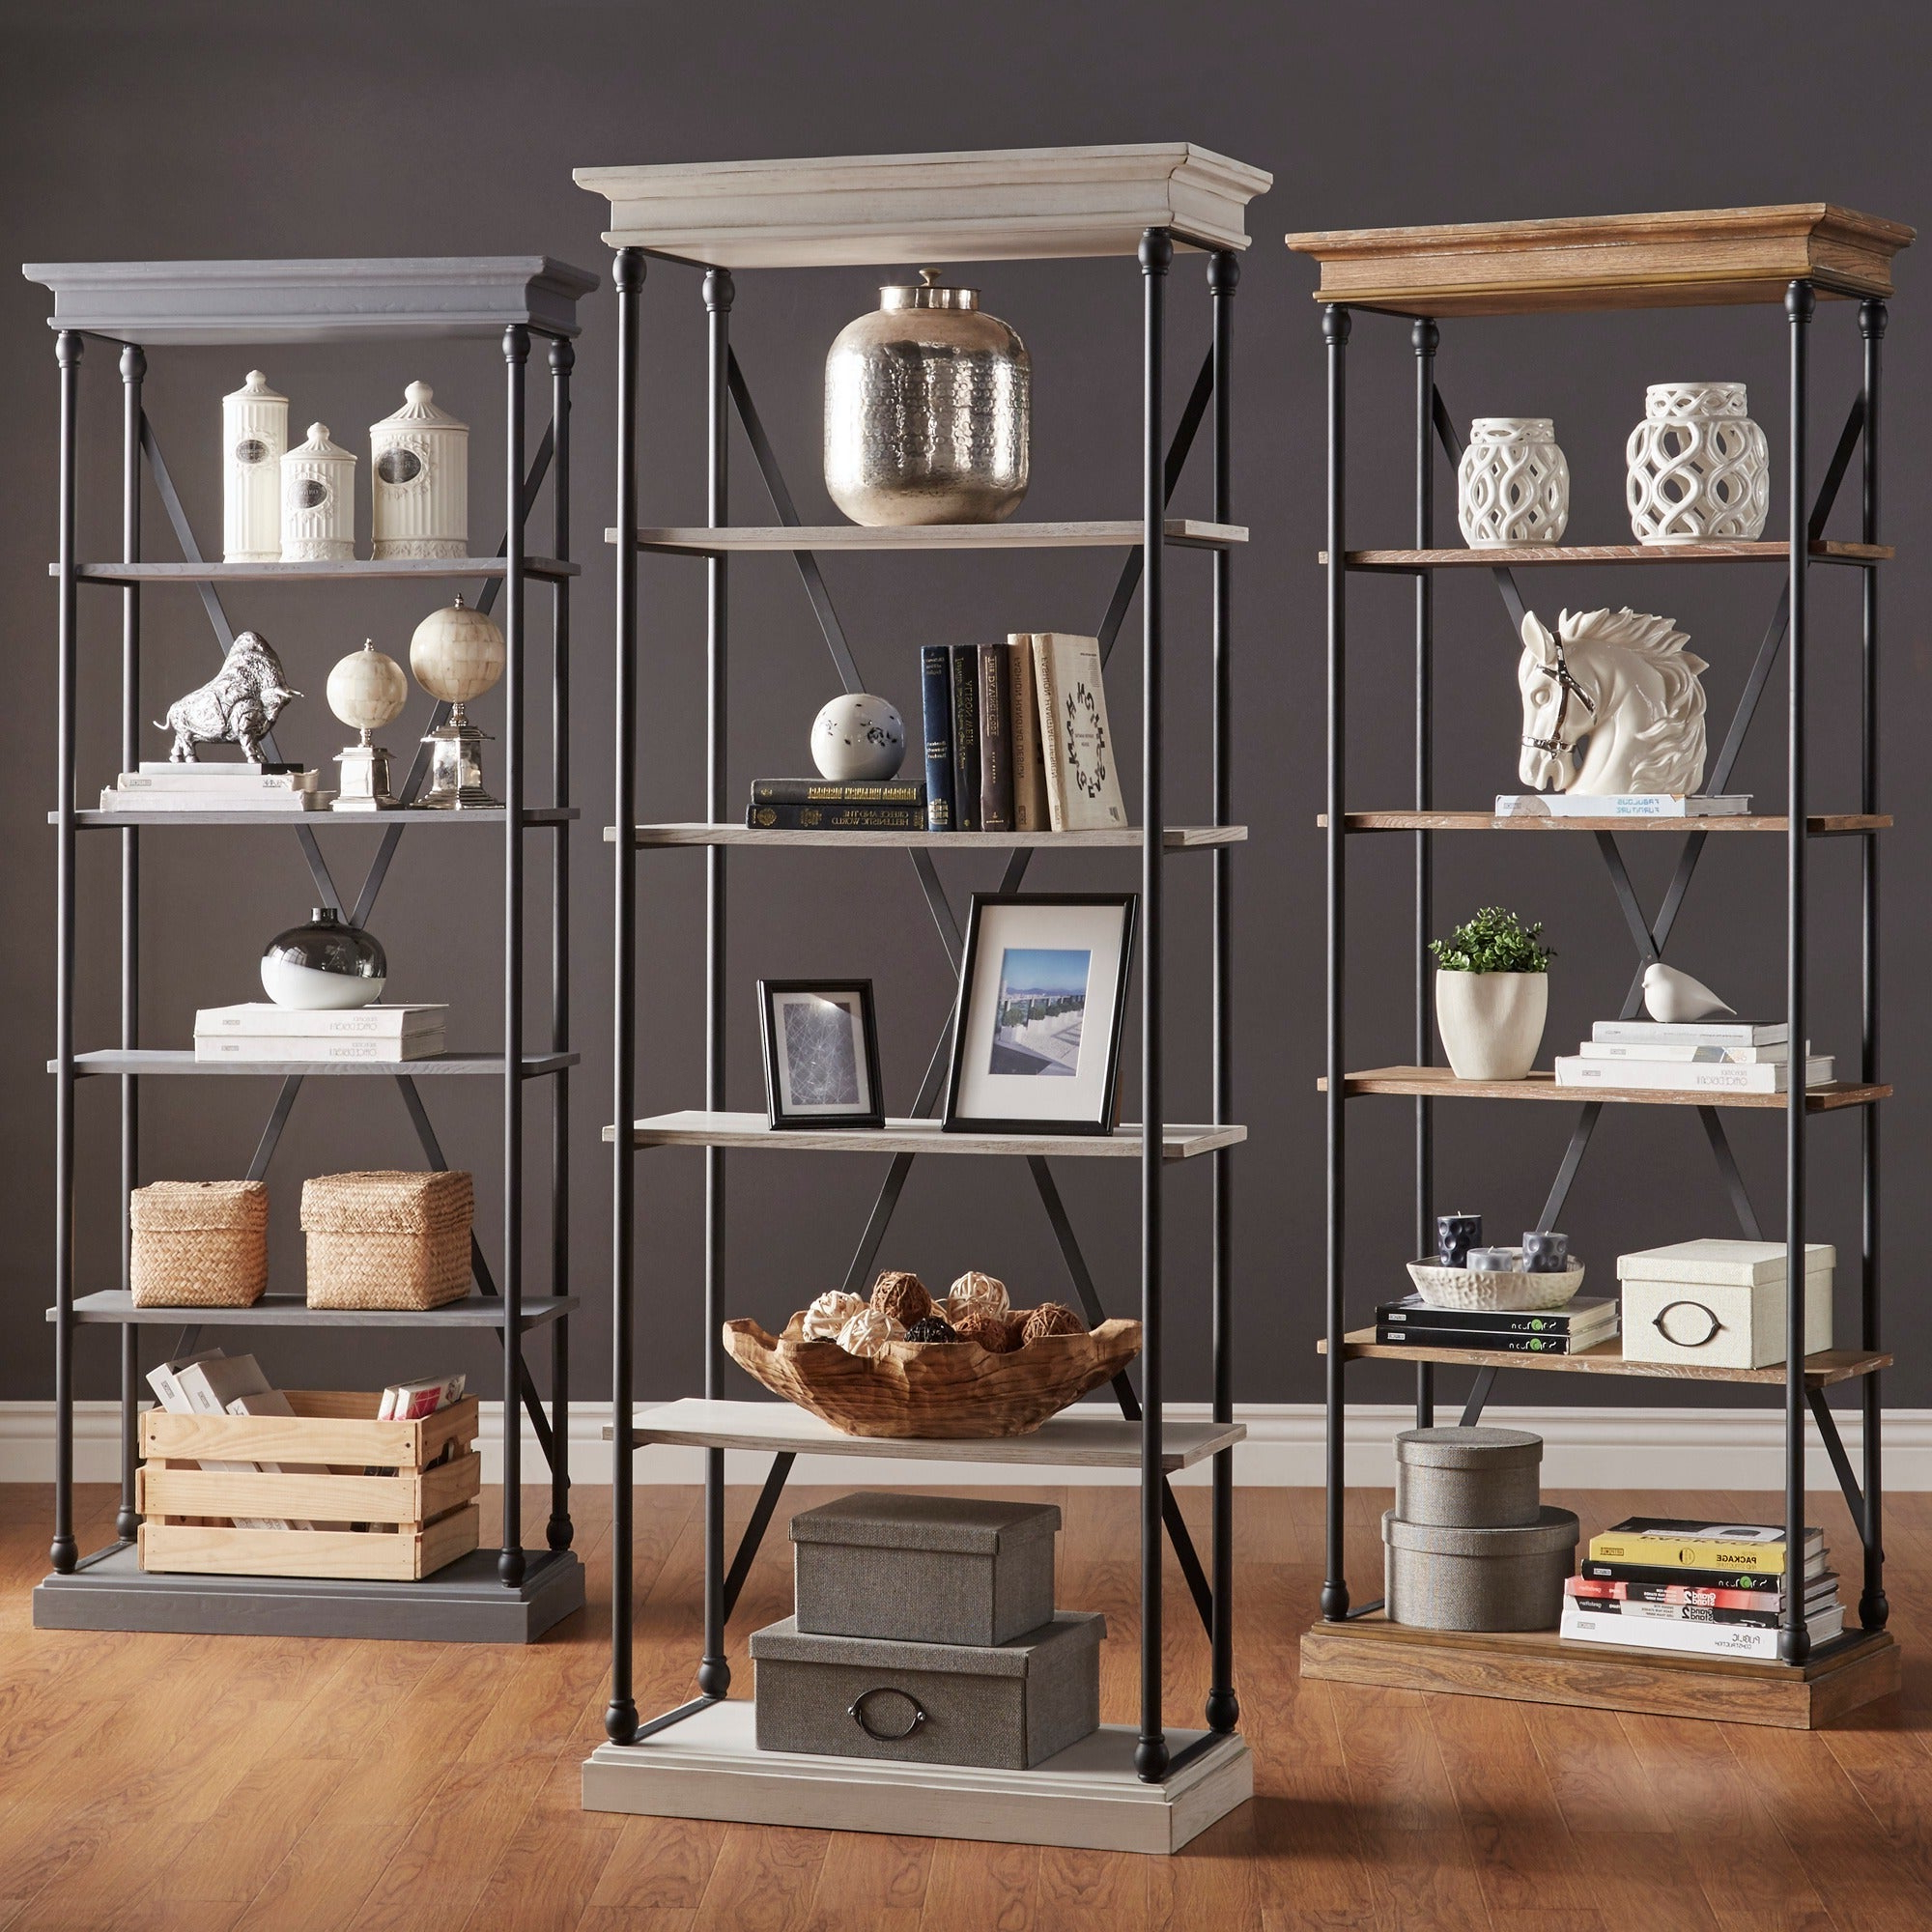 Adair Etagere Bookcases Within Most Popular Barnstone Cornice Etagere Bookcaseinspire Q Artisan (View 12 of 20)